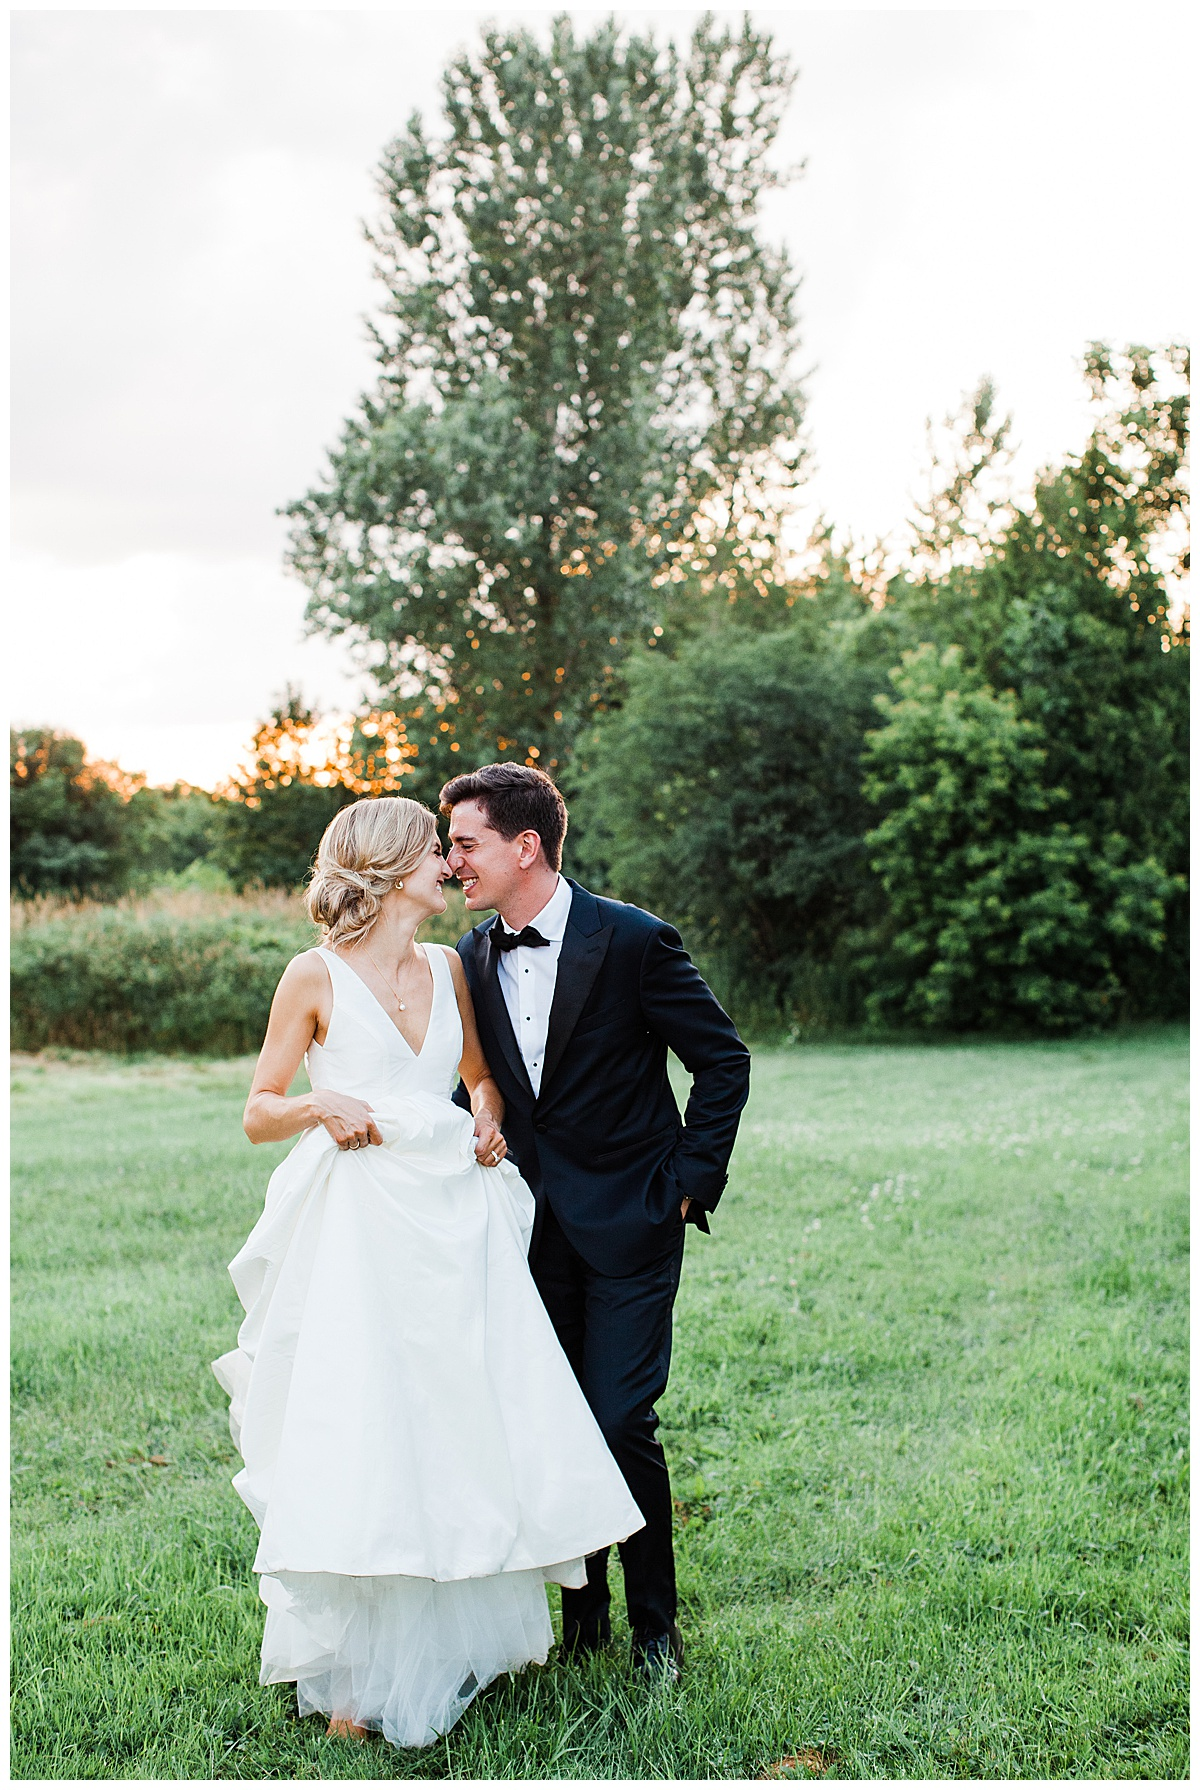 Bride and groom stand in field nuzzling noses at sunset| Ontario wedding| Toronto wedding photographer| 3photography